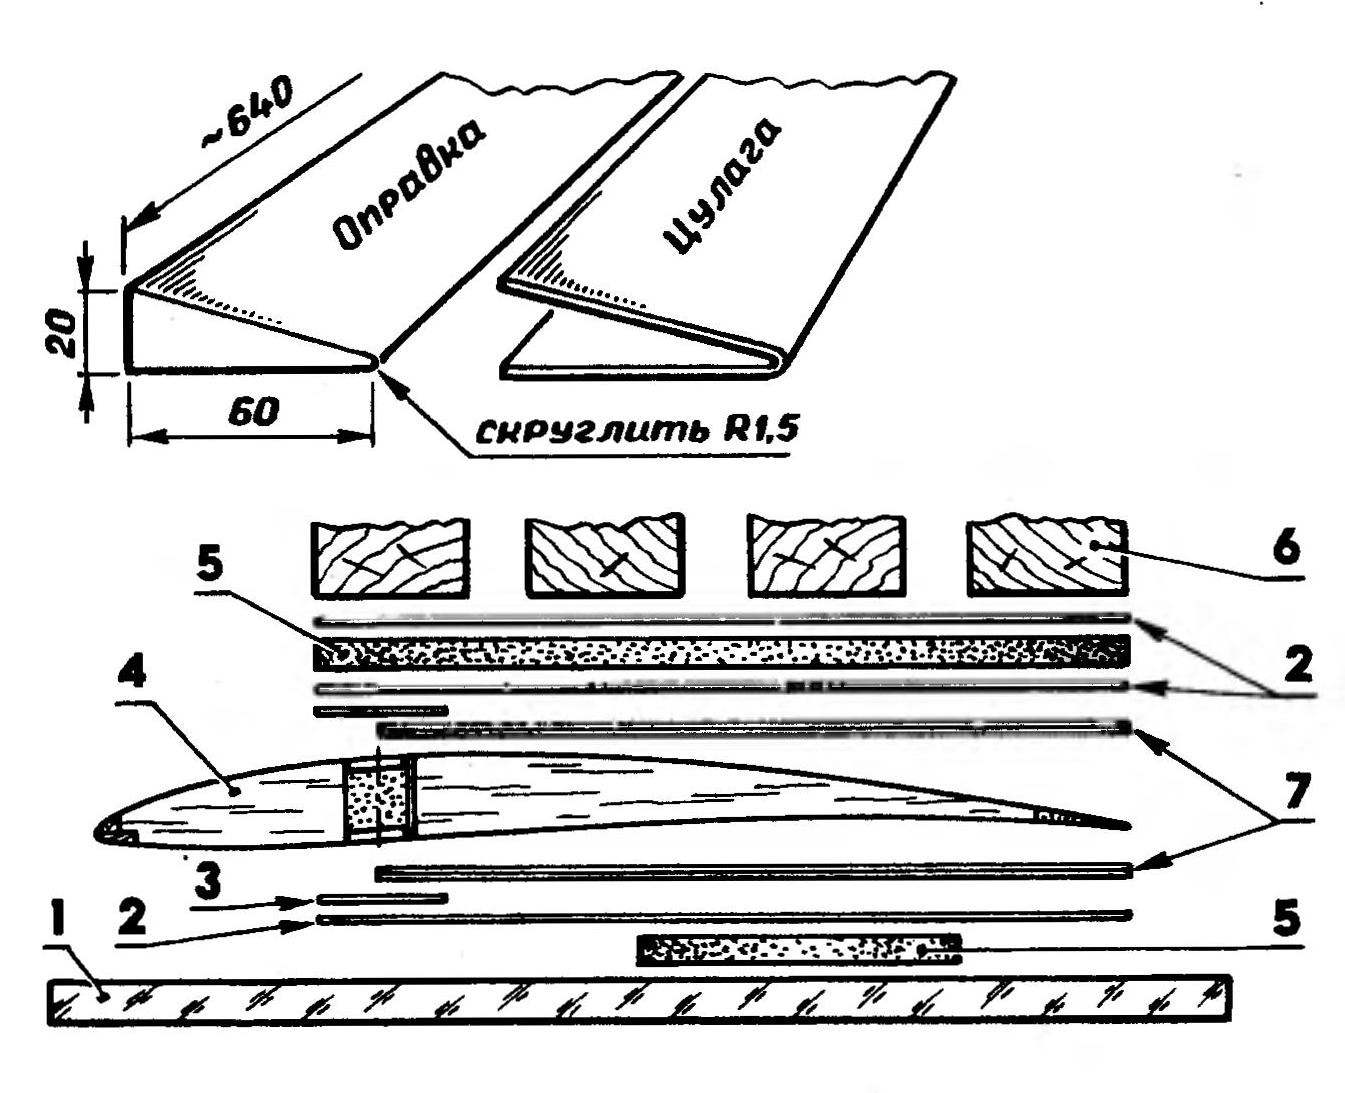 The scheme of gluing the rear section of the wing